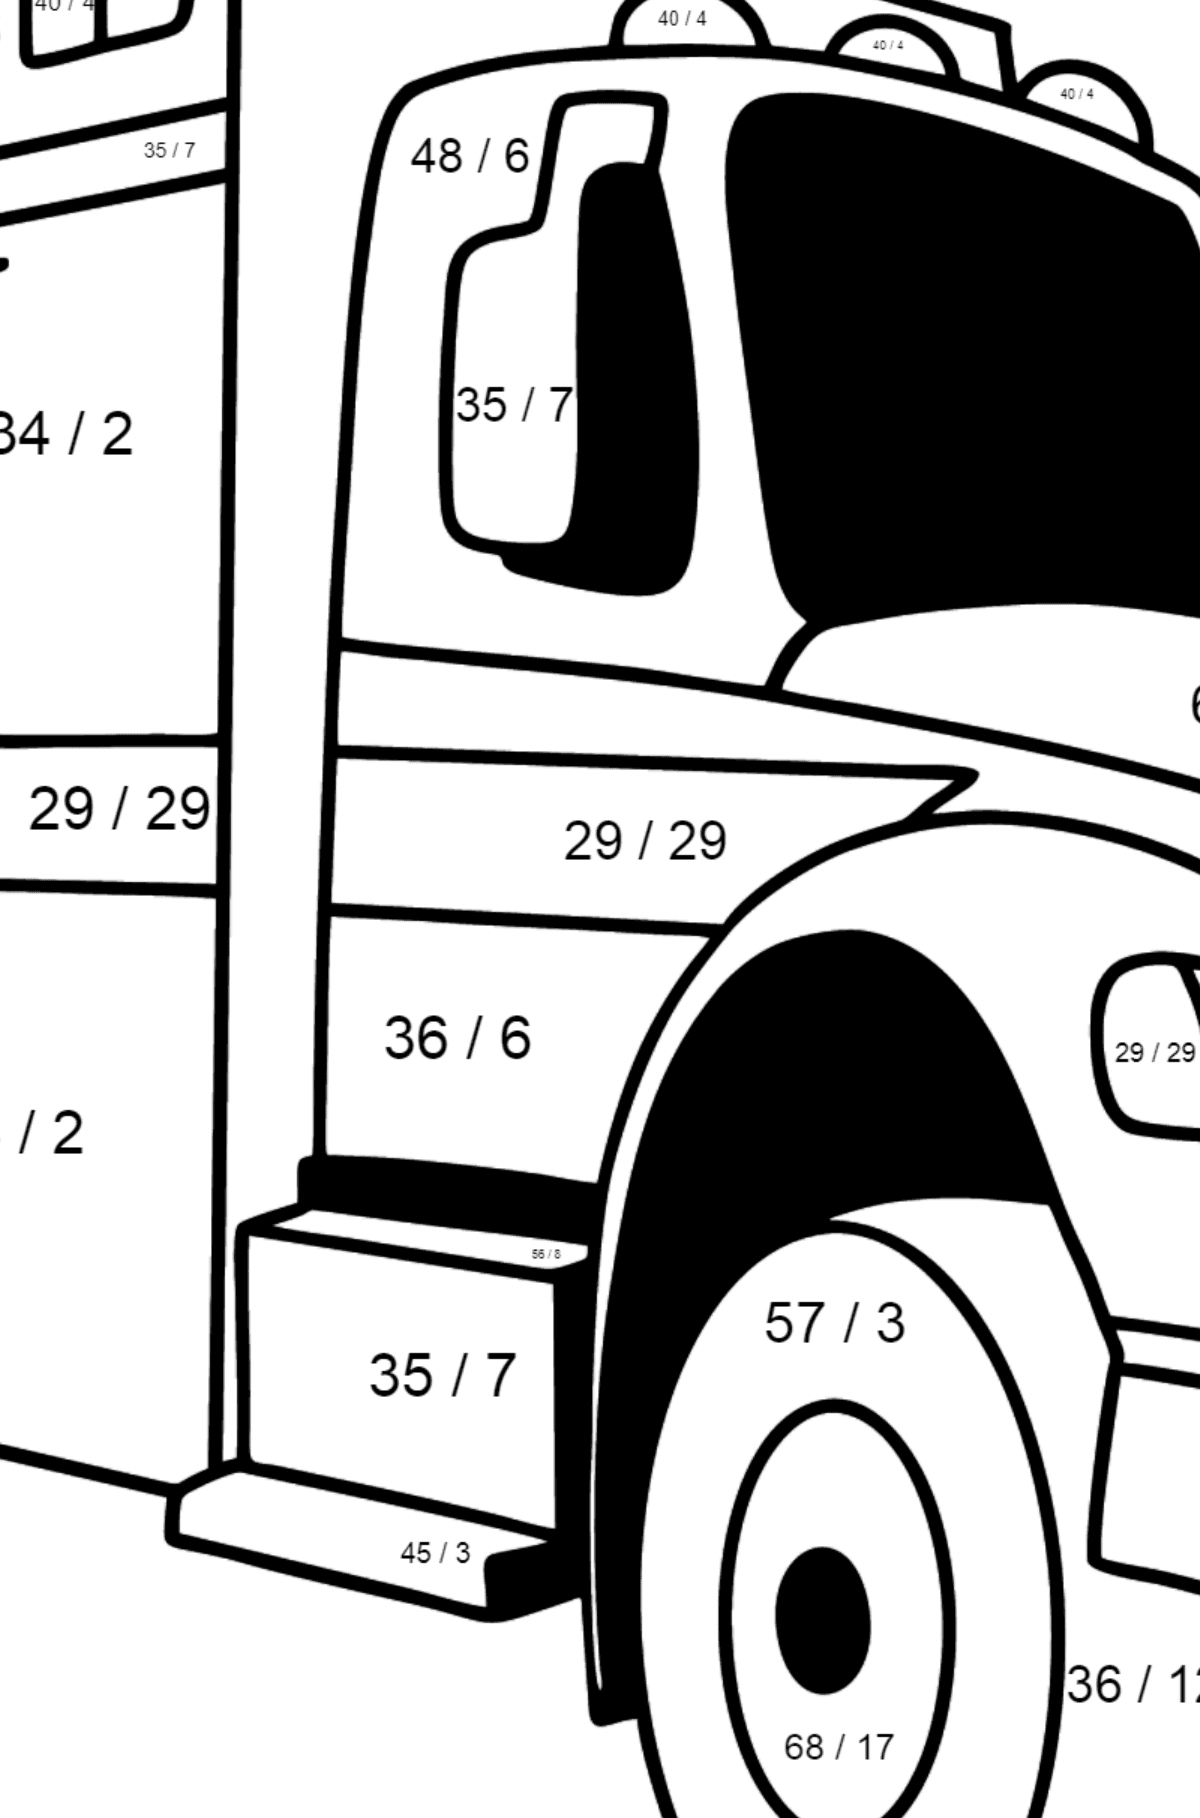 Fire Truck in Argentina coloring page - Math Coloring - Division for Kids